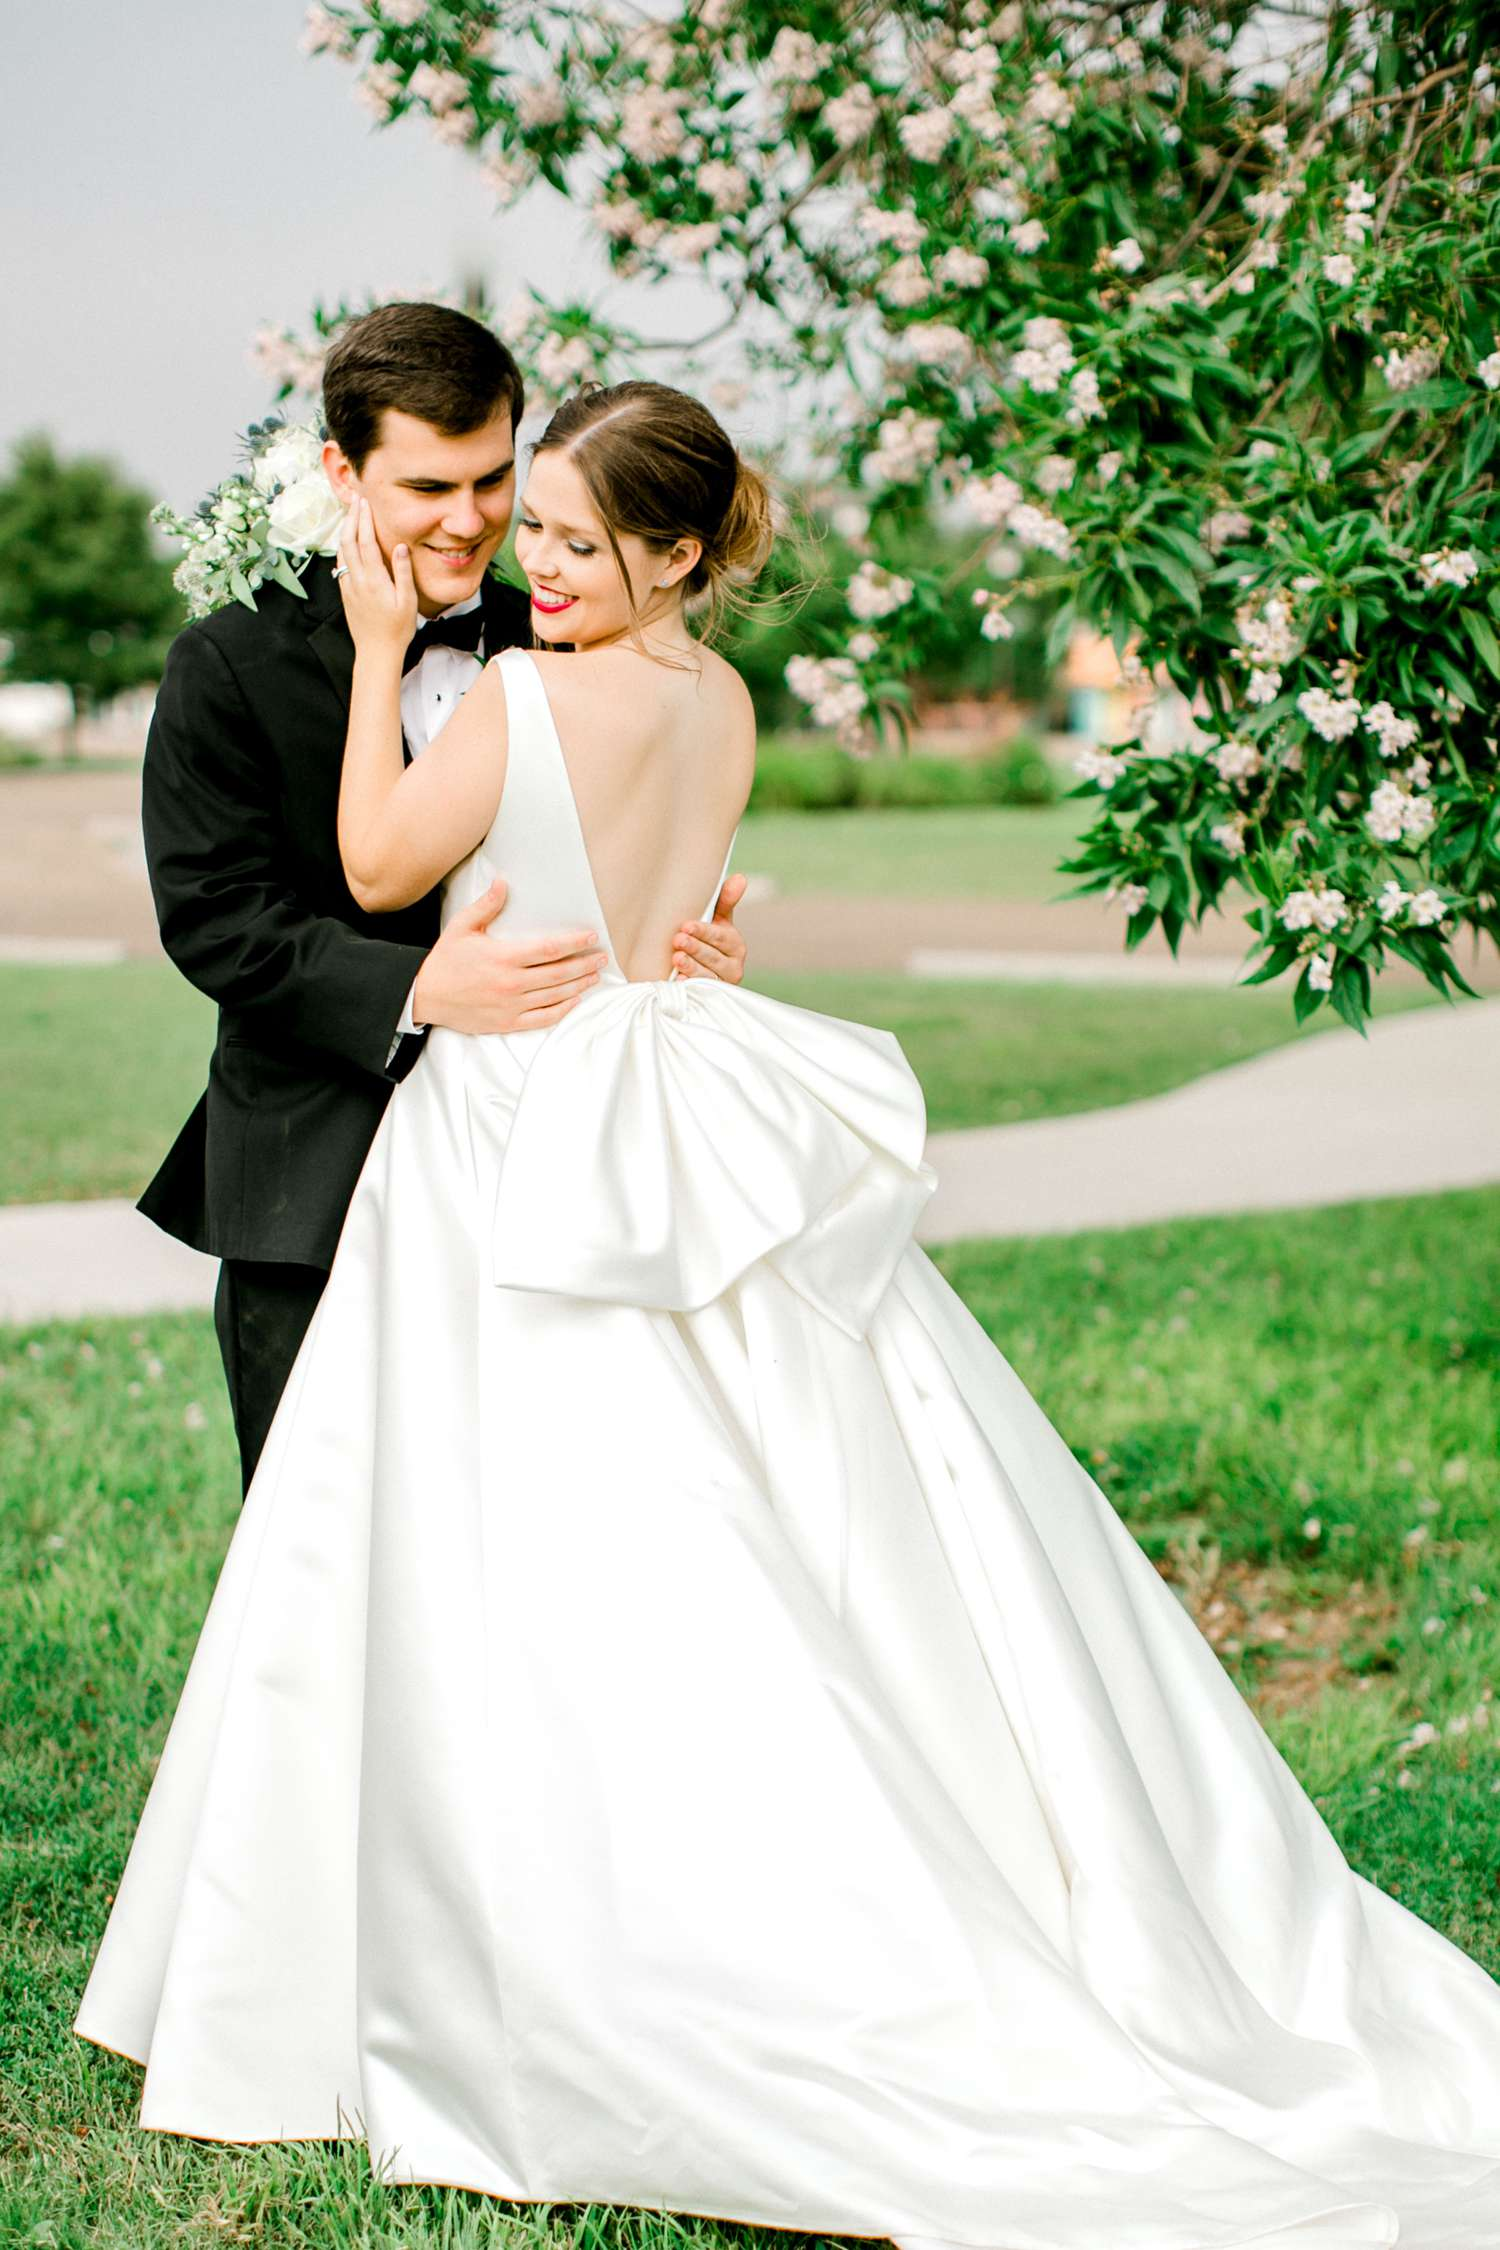 HANNAH+CRAIG+CHILDS+TEXAS+TECH+WEDDING+ALLEEJ+LUBBOCK+PHOTOGRAPHER_0107.jpg